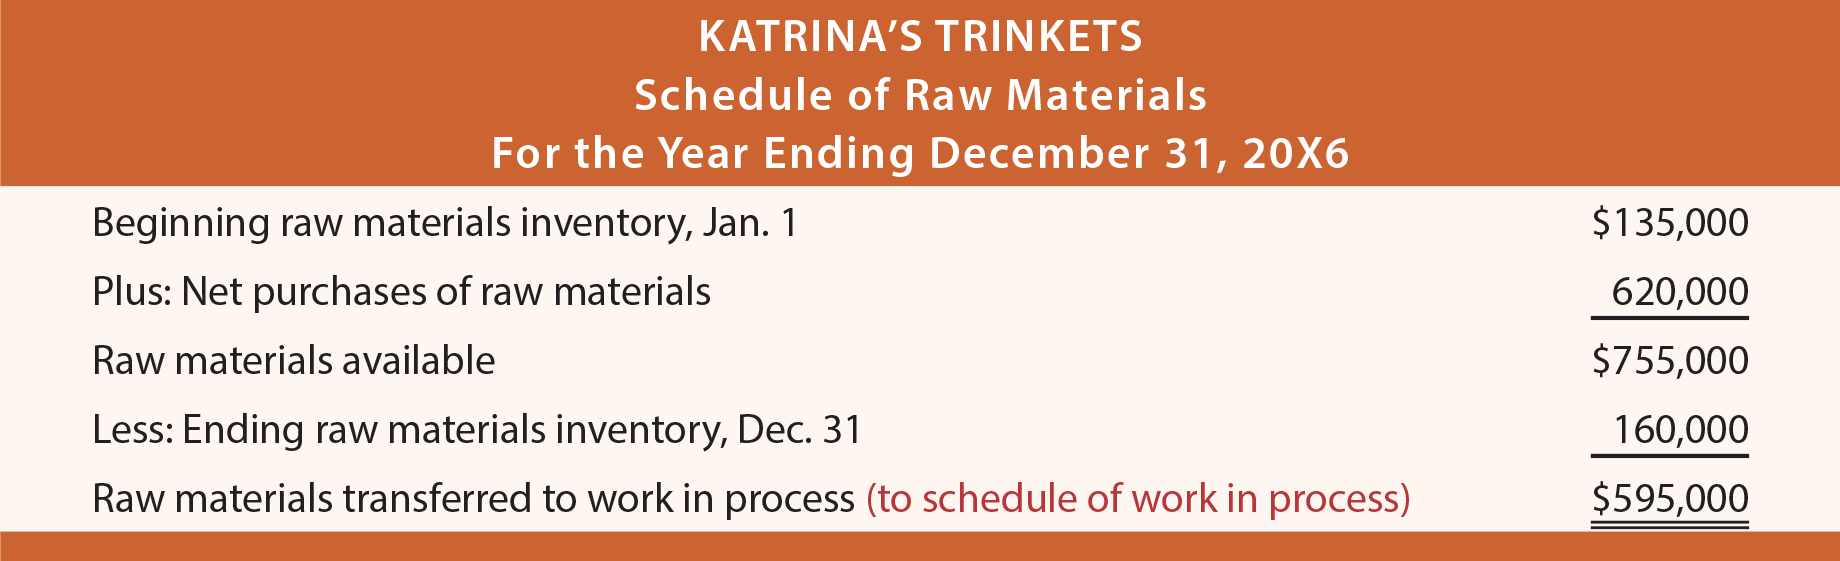 Schedule of Raw Materials